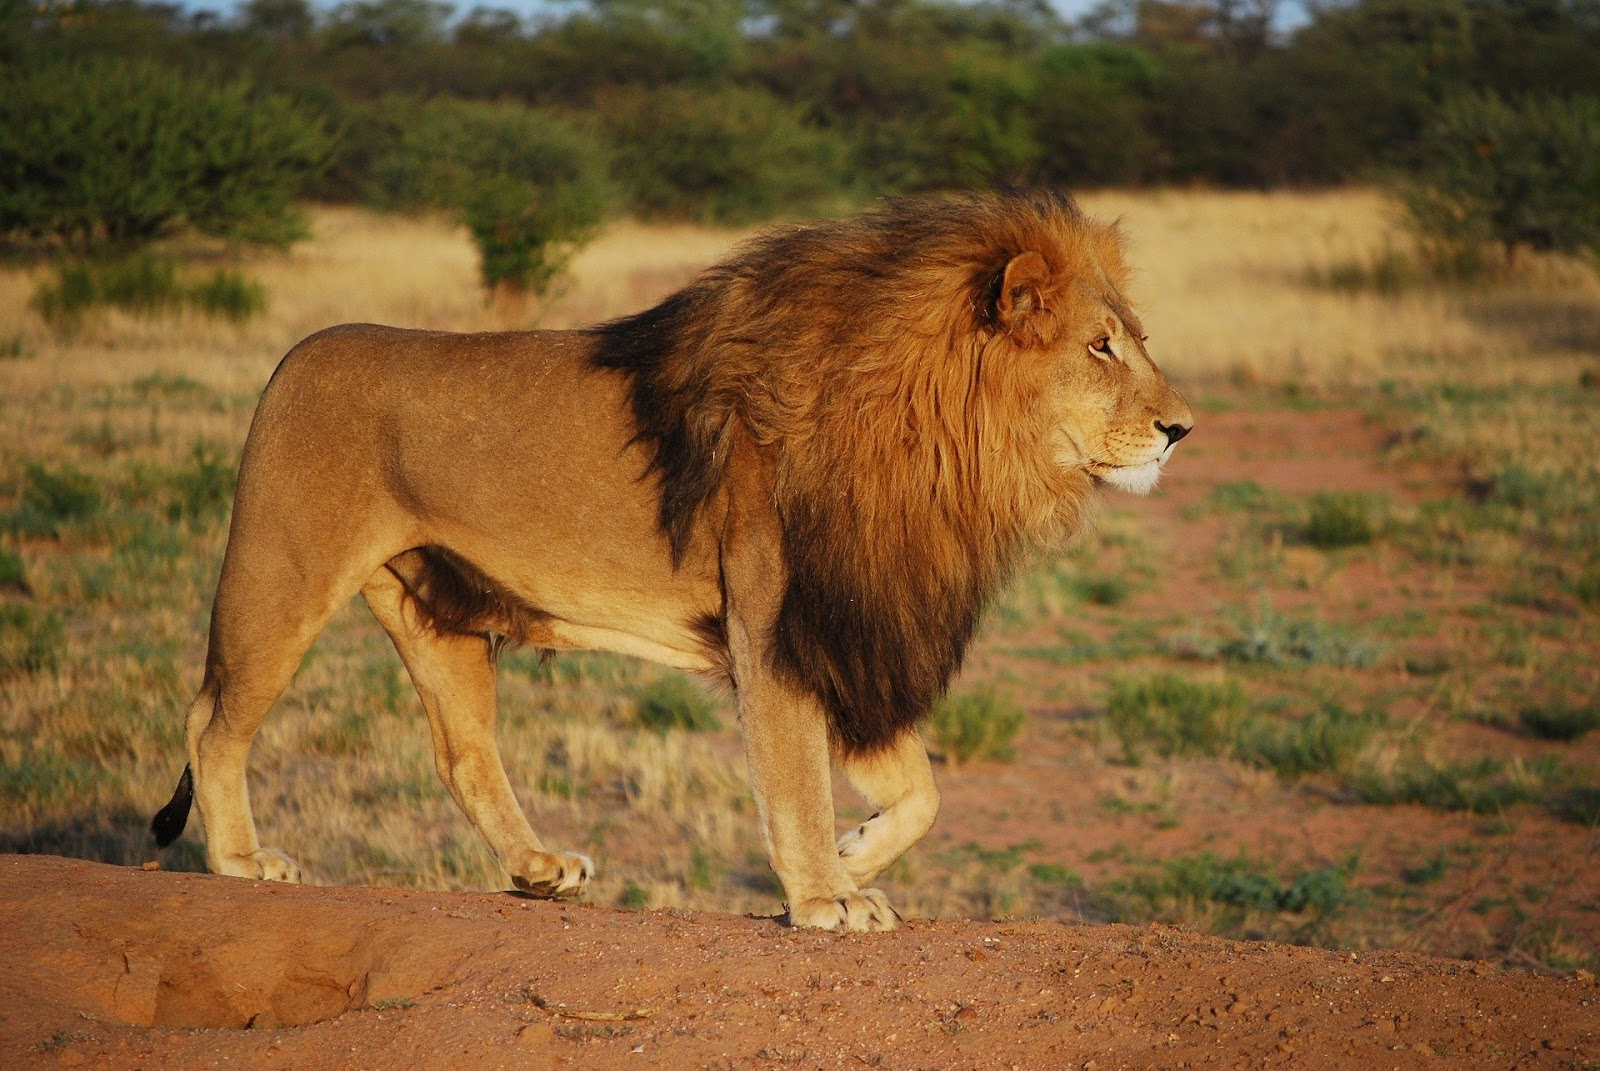 Enraged Lion Images Pics for Download